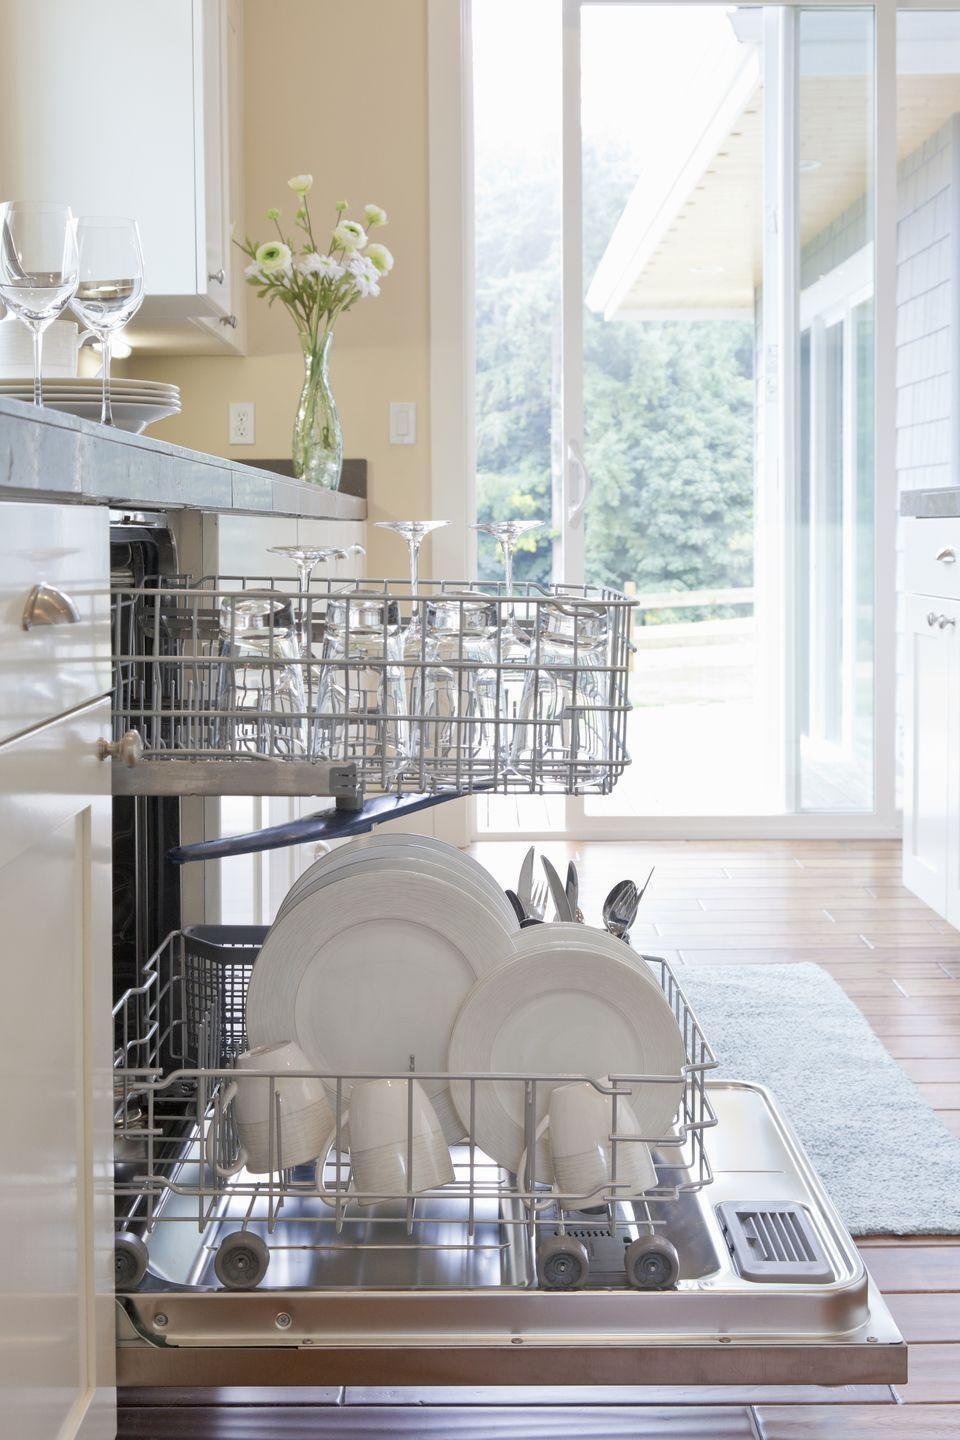 "<p>Just like the other appliances in your home, dishwashers require regular cleaning. <em>Good Housekeeping</em> recommends <a href=""https://www.countryliving.com/home-maintenance/cleaning/a27471775/how-to-clean-dishwasher/"" rel=""nofollow noopener"" target=""_blank"" data-ylk=""slk:giving your dishwasher a deep clean"" class=""link rapid-noclick-resp"">giving your dishwasher a deep clean</a> — including an alkaline wash and drain trap scrub — once a month. One way to do this is to fill a dishwasher-safe cup or bowl with white vinegar and place it on <br>the upper rack of your dishwasher. Afterwards, run the (otherwise-empty) dishwasher on the hottest setting. If you don't like the smell of vinegar, you can also opt to sprinkle one cup of baking soda along the bottom of your dishwasher and rinse on a hot-water cycle instead.</p><p>To clean your drain trap, remove and disassemble it and — once it's apart — use a sponge or toothbrush and dish soap to remove any stuck-on food bits or mold.<br></p>"